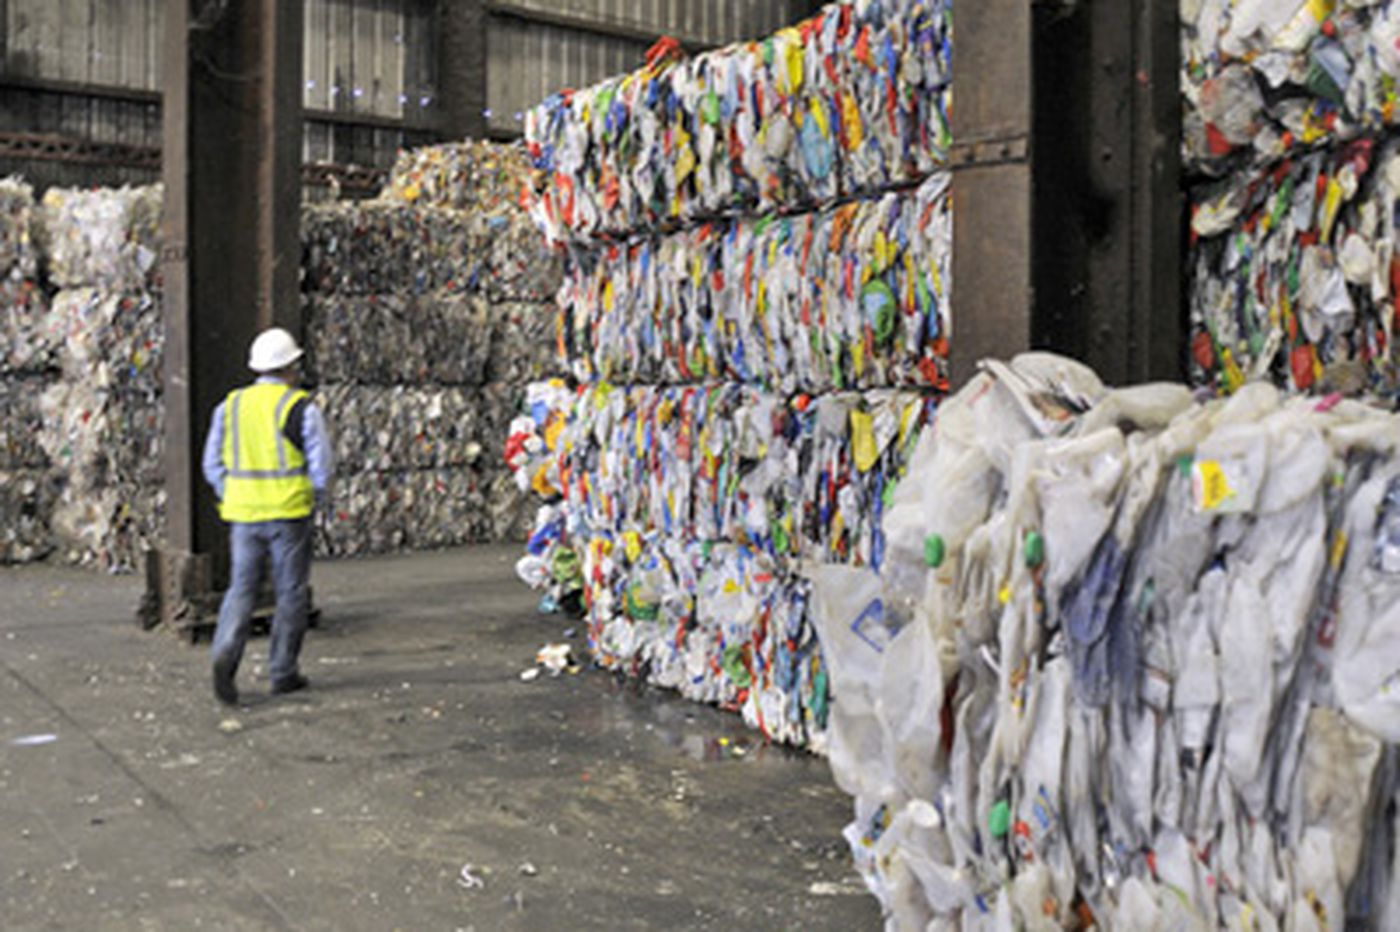 New Jersey strives to regain its recycling reputation